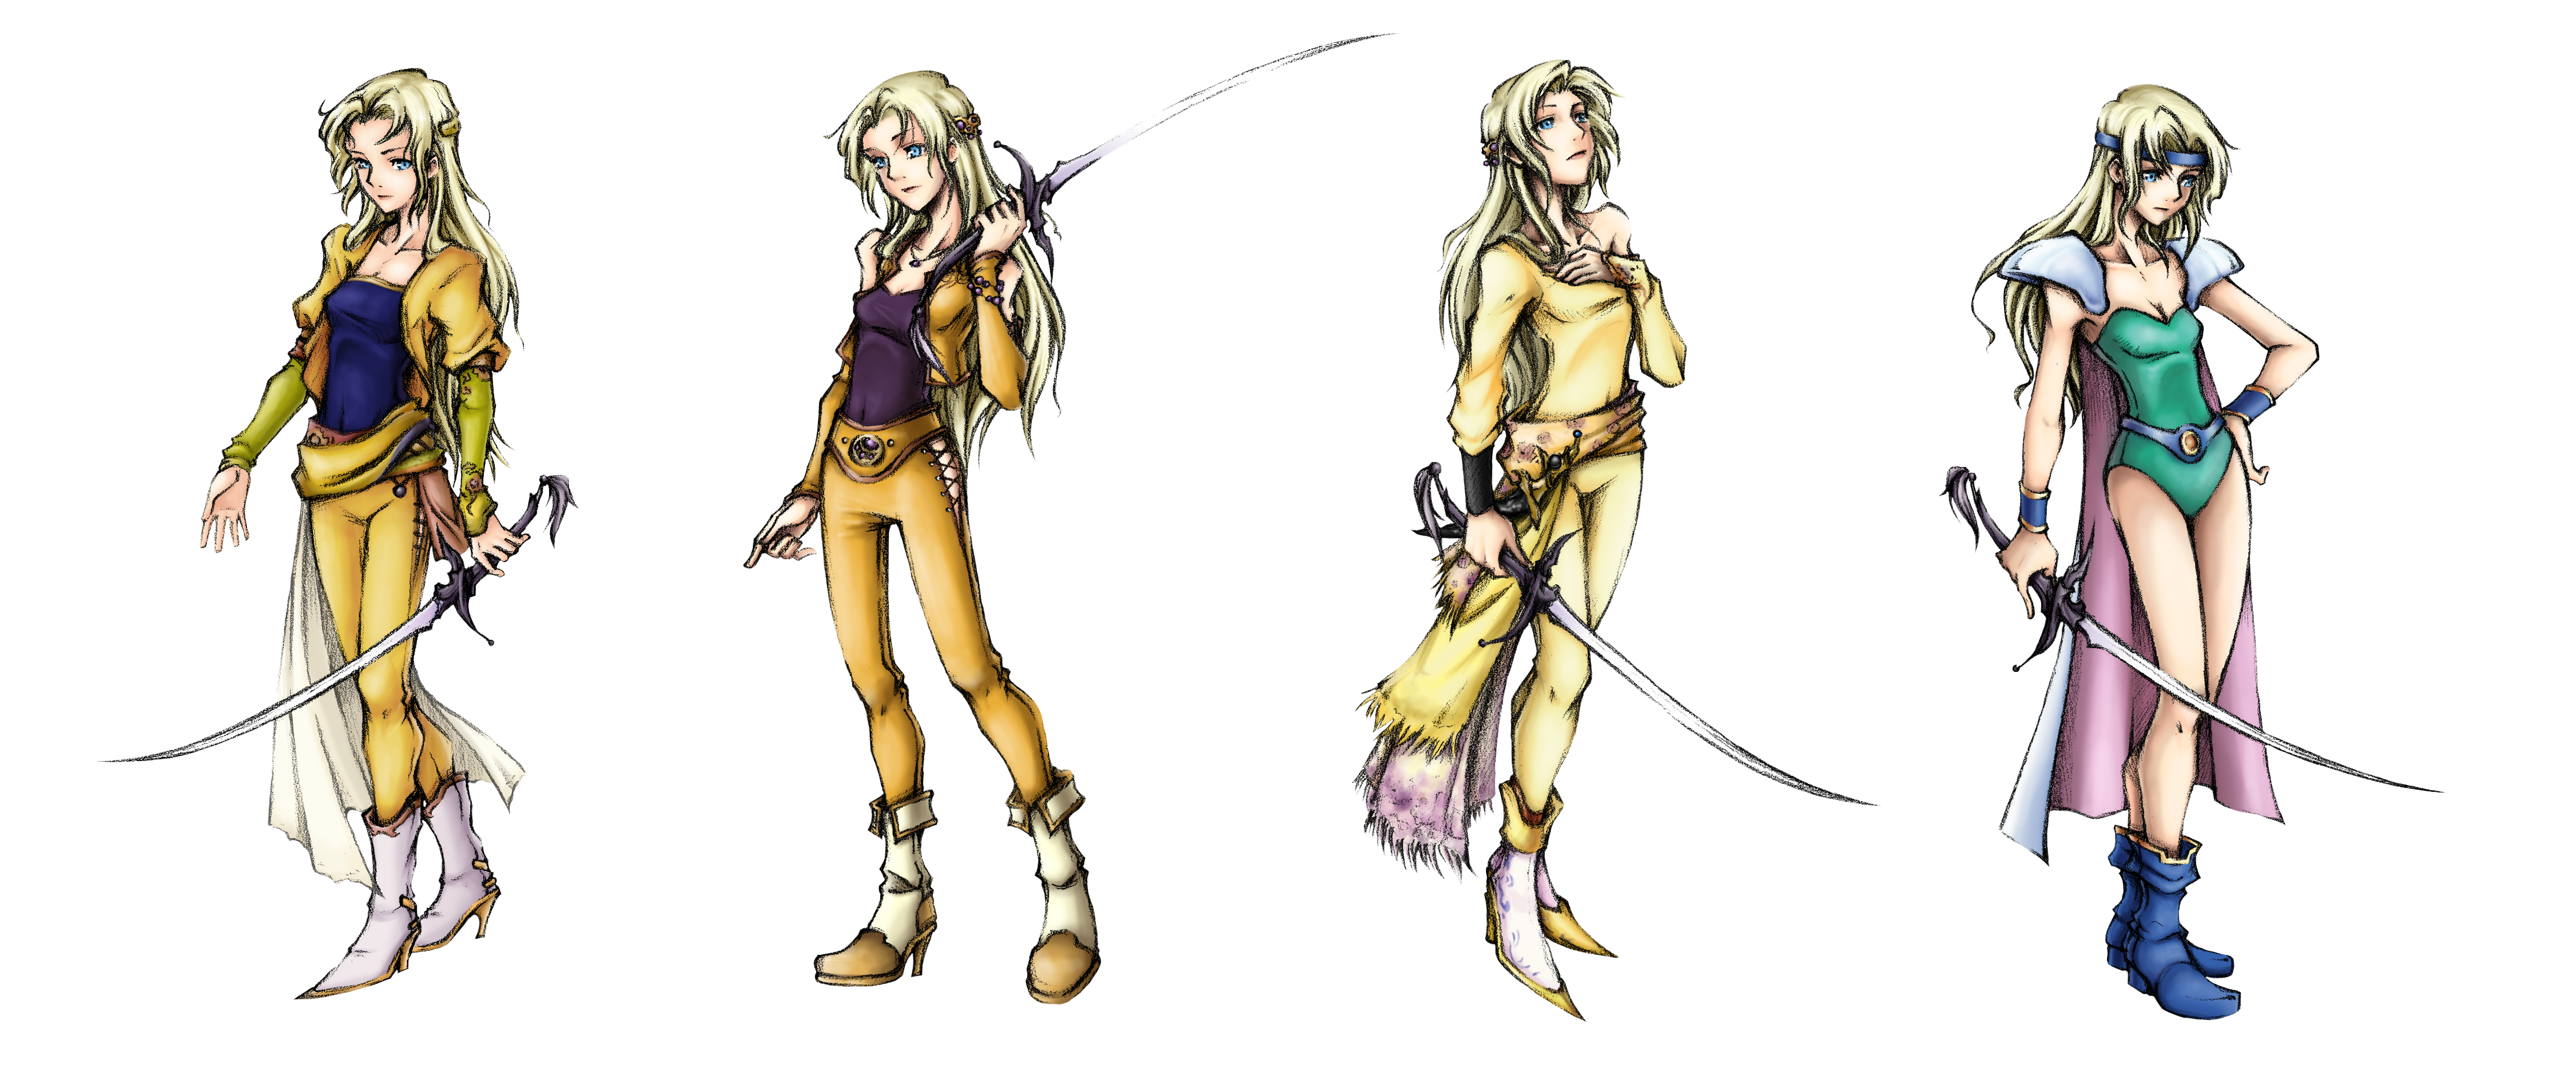 All final fantasy female characters